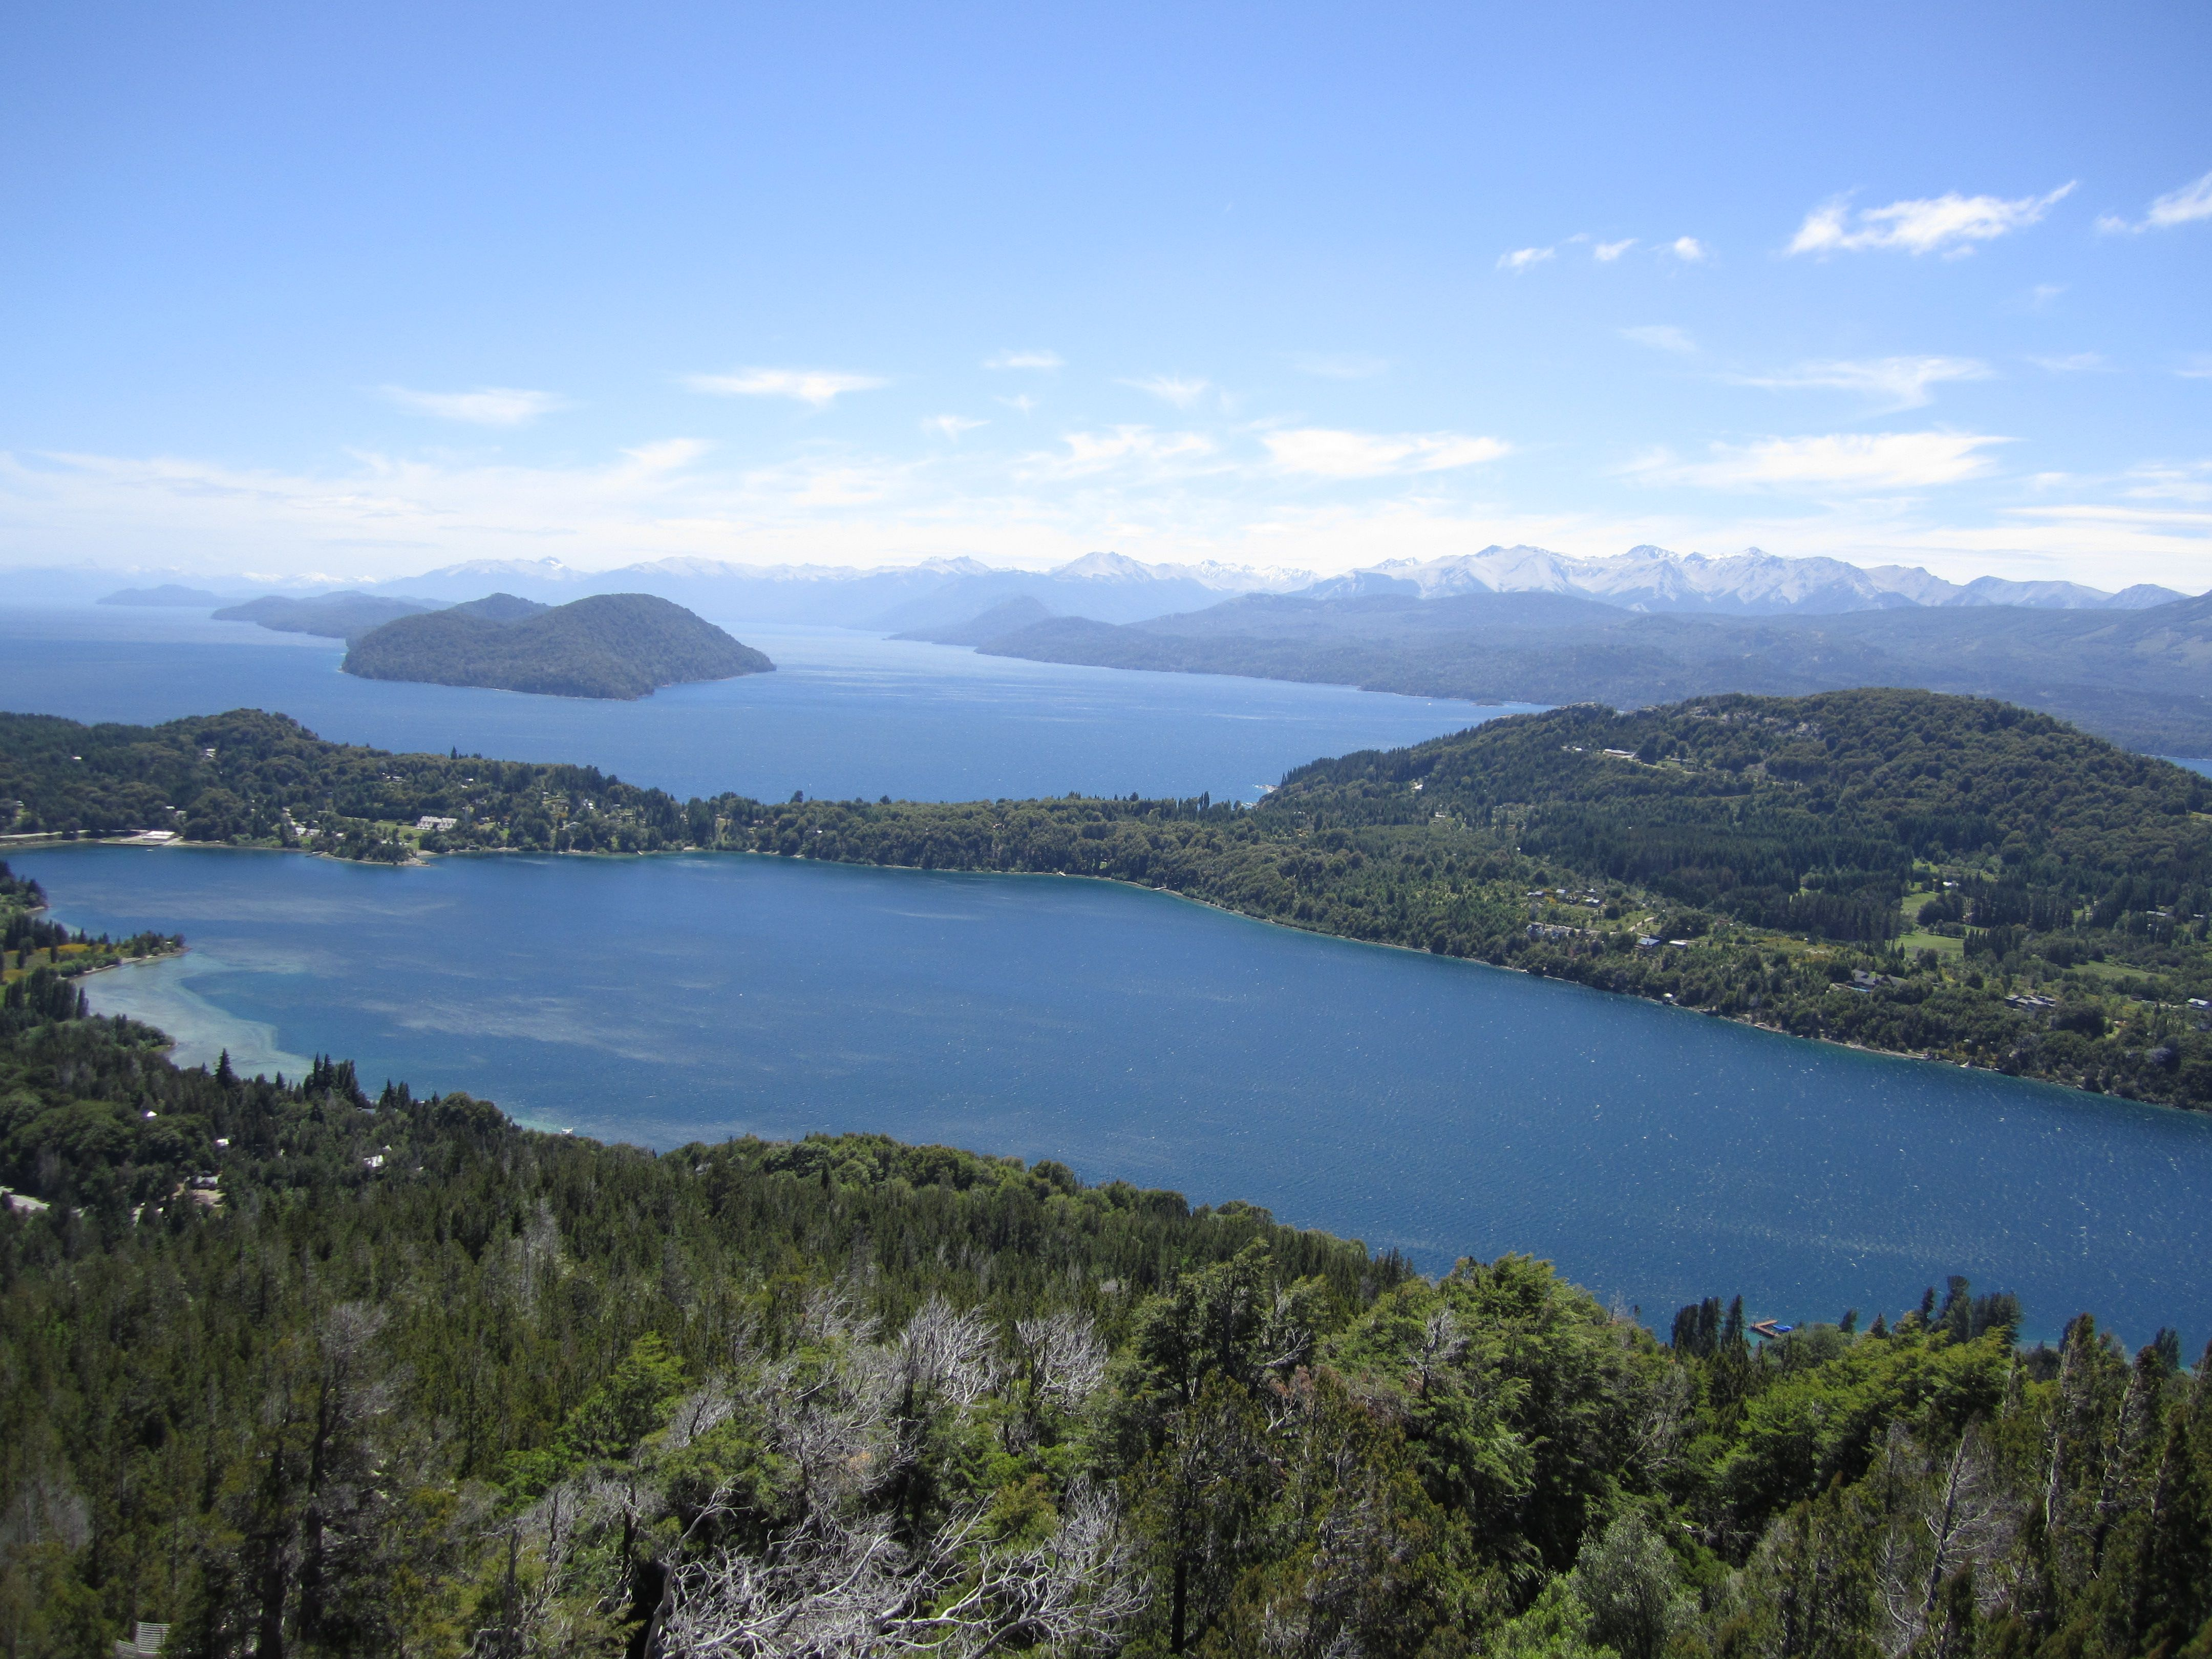 Circuito Chico Bariloche : Circuito chico bariloche argentina places ive already been to